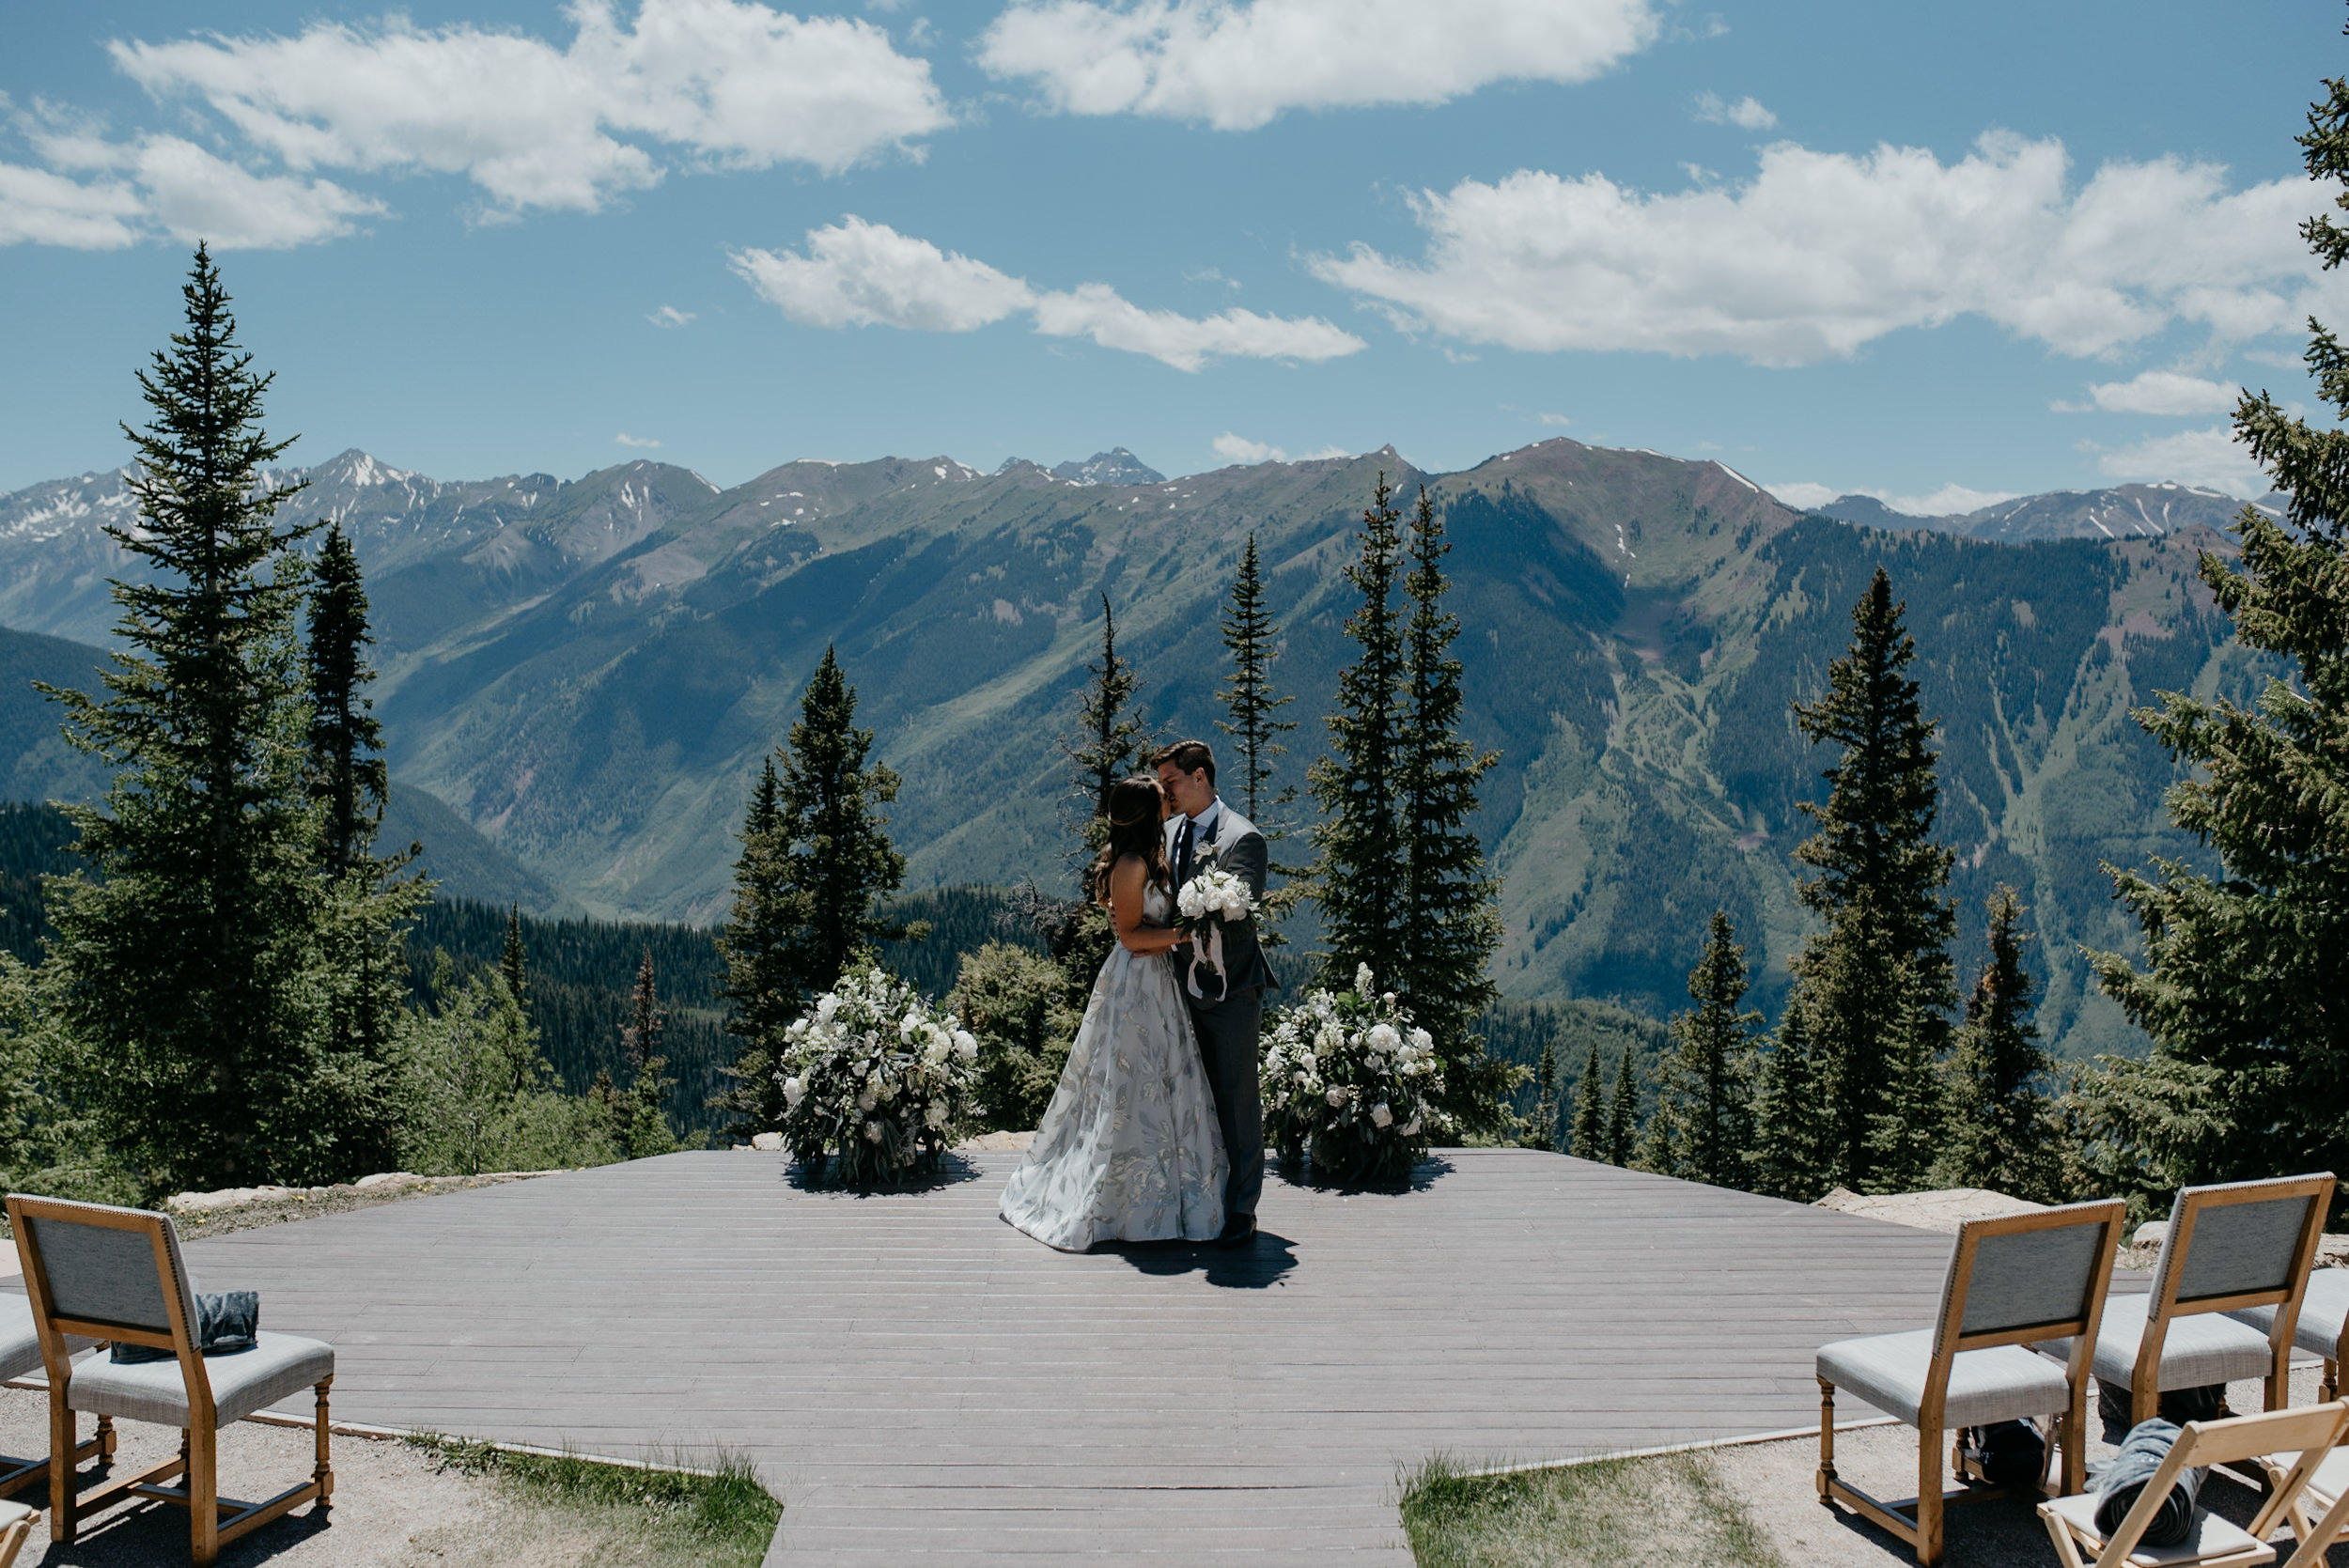 Bride and groom at The Little Nell. Colorado wedding and elopement photographer.